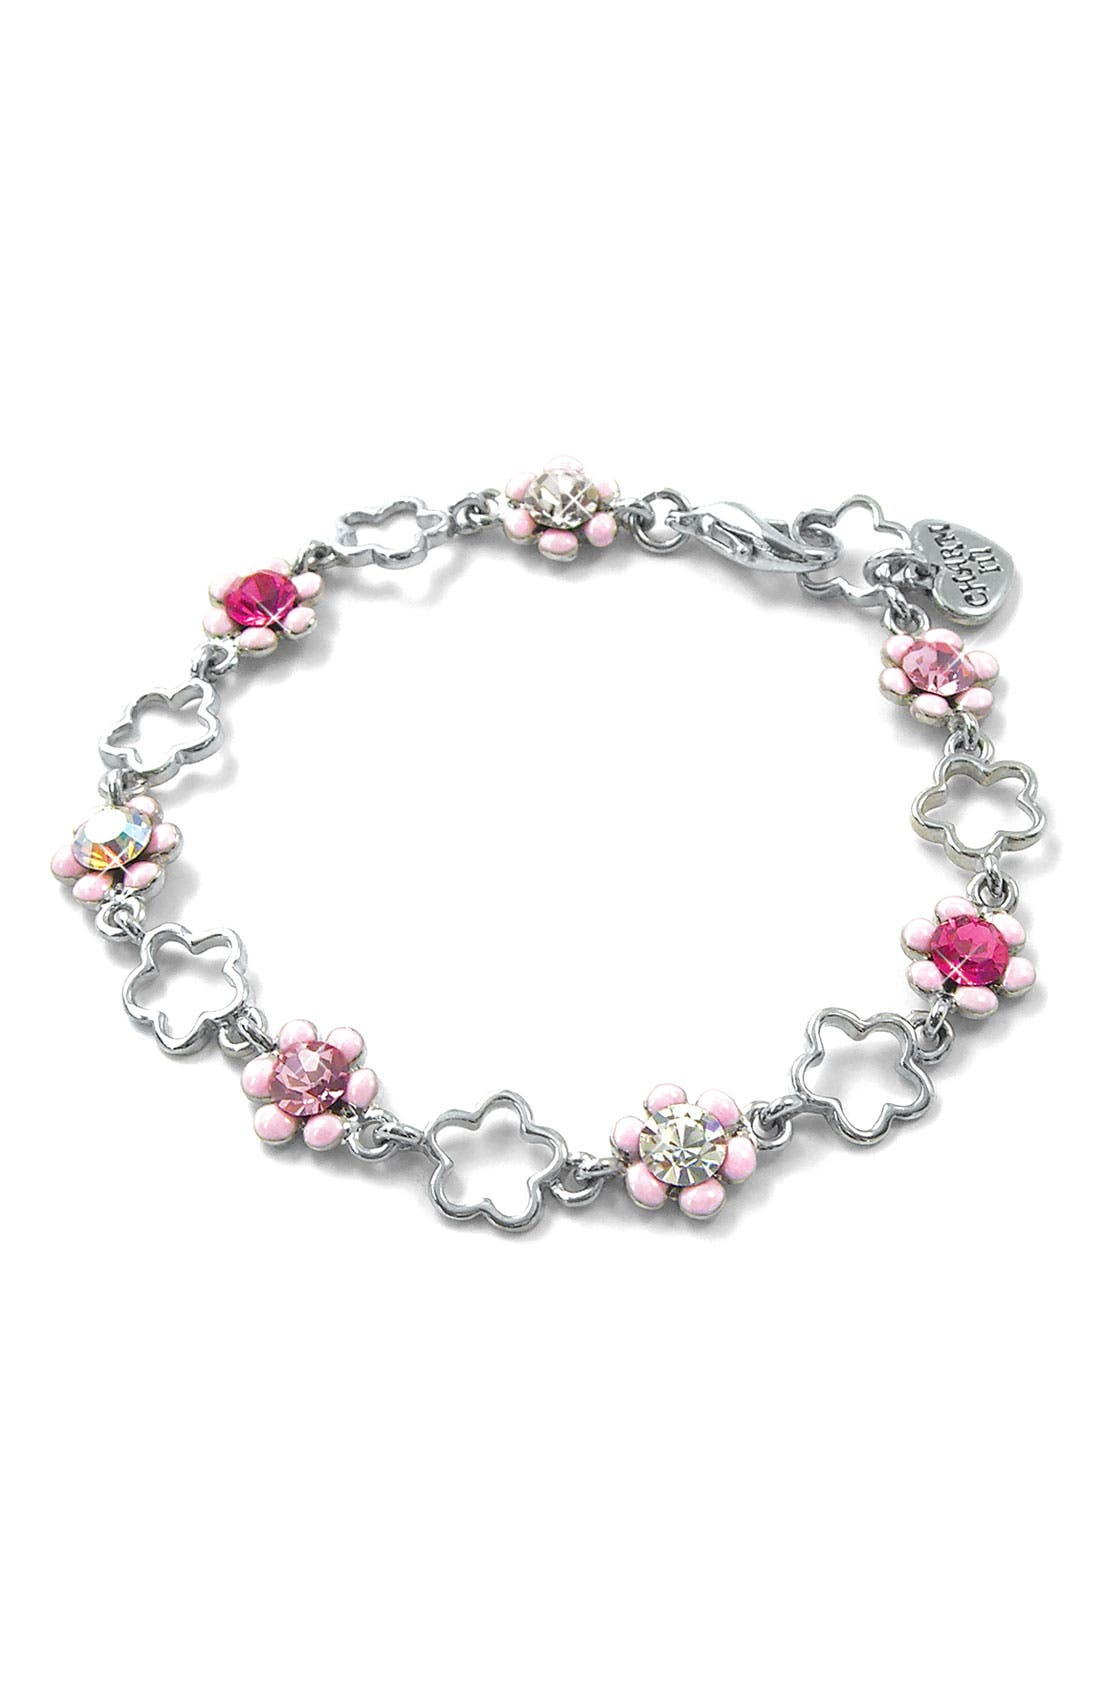 Alternate Image 1 Selected - CHARM IT!® Flower Charm Bracelet (Girls)